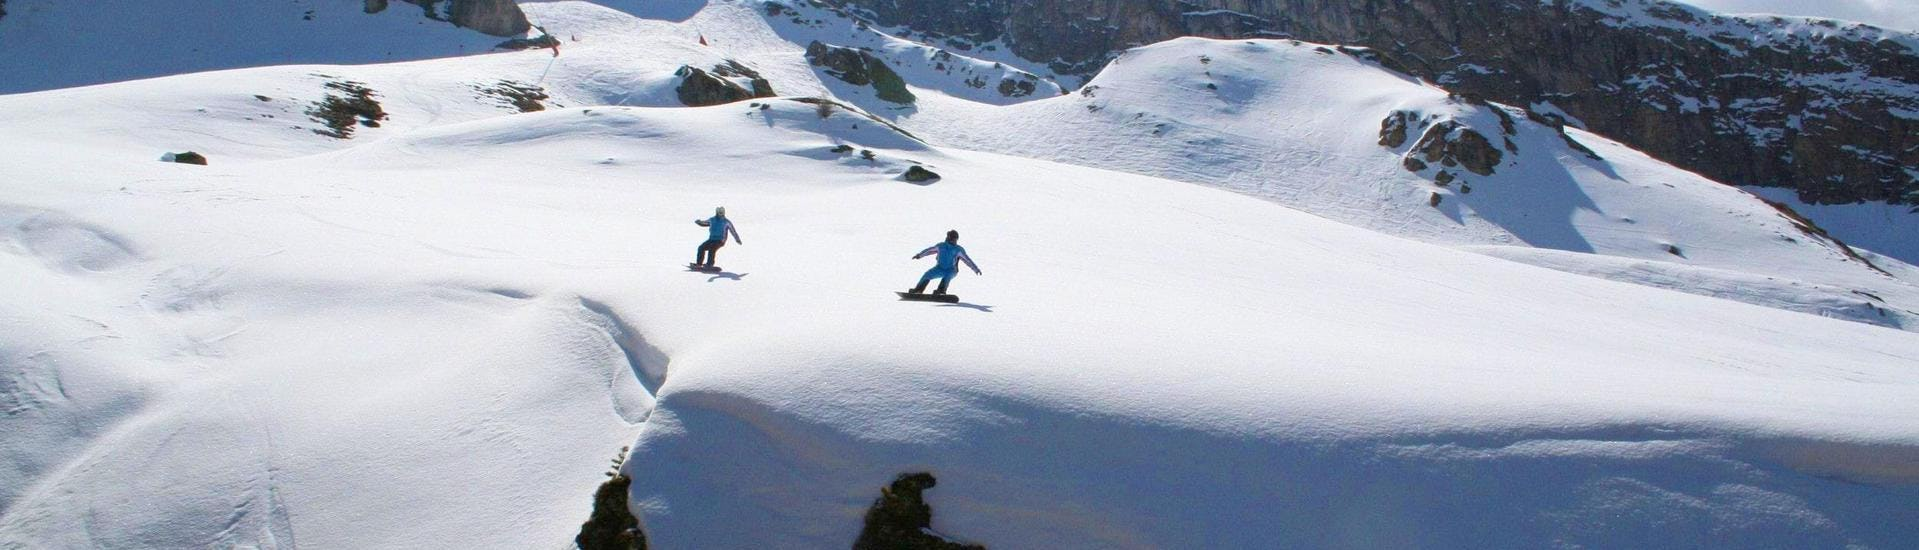 A snowboarding instructor and a learner are gliding along an untouched powder snow slope during one of their Private Snowboarding Lessons for Kids & Adults - All Levels in the ski resort of Ischgl.